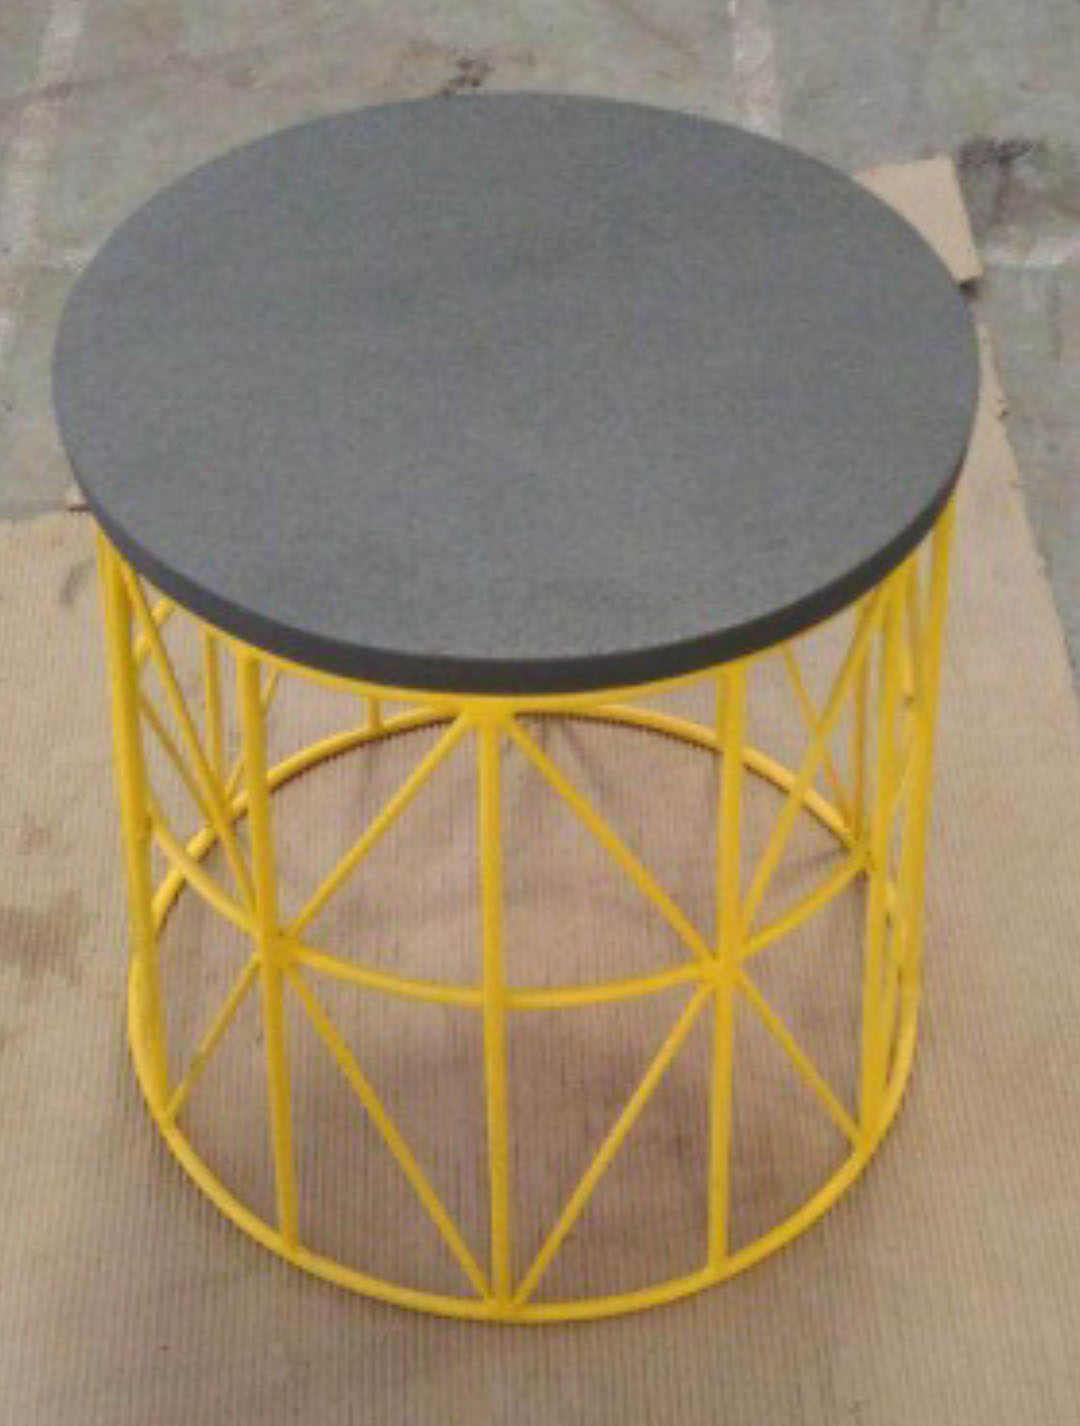 METAL PAINTED BASE WITH LIGHT WEIGHT CONCRETE TOP